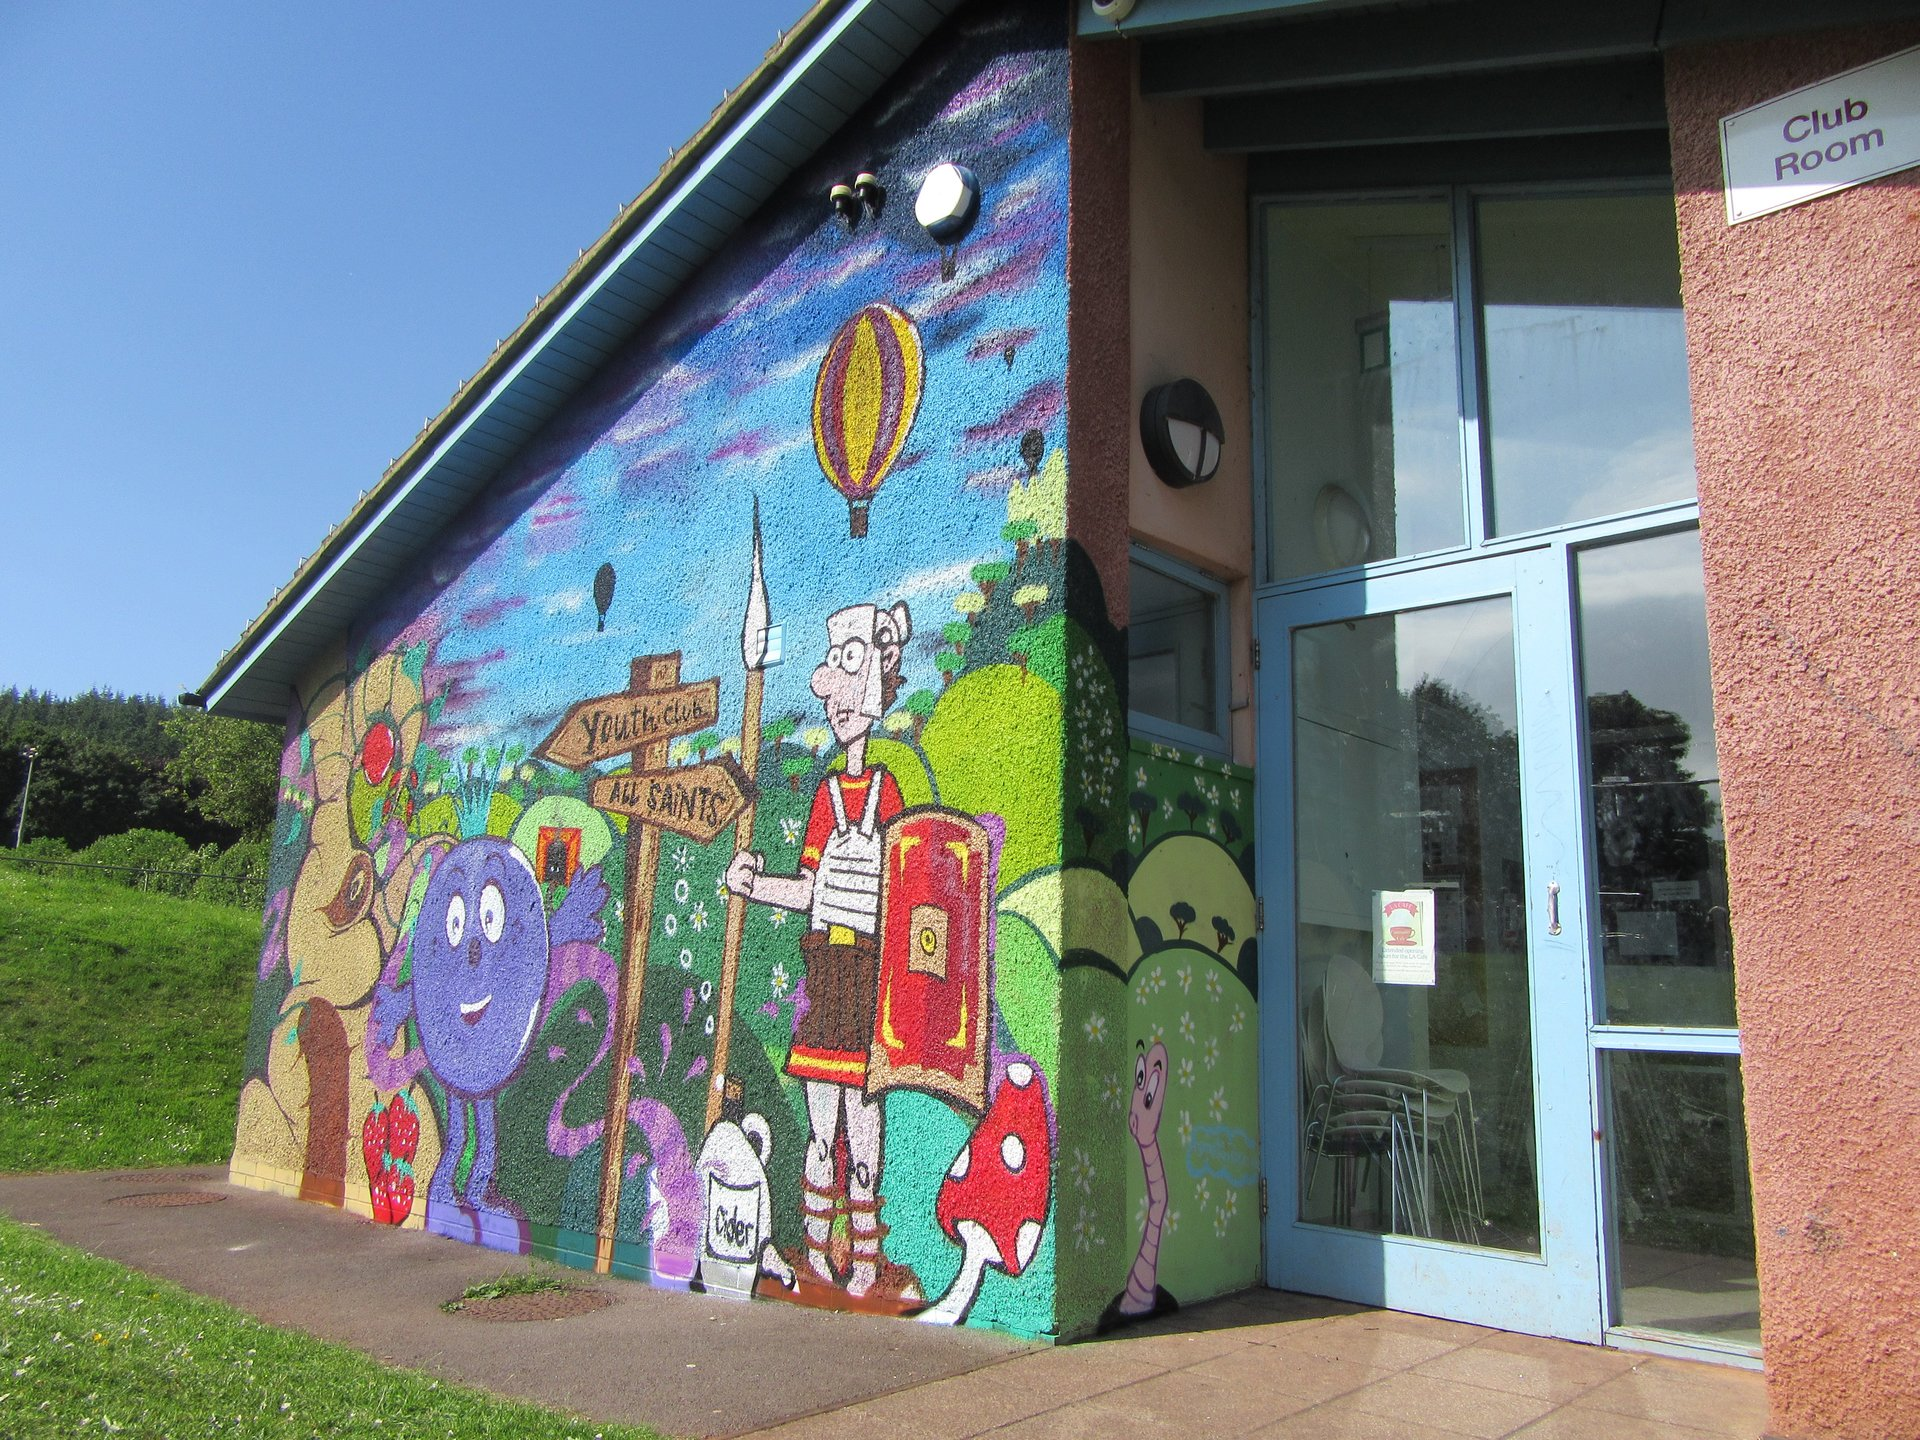 Long ashton community centre graffiti mural